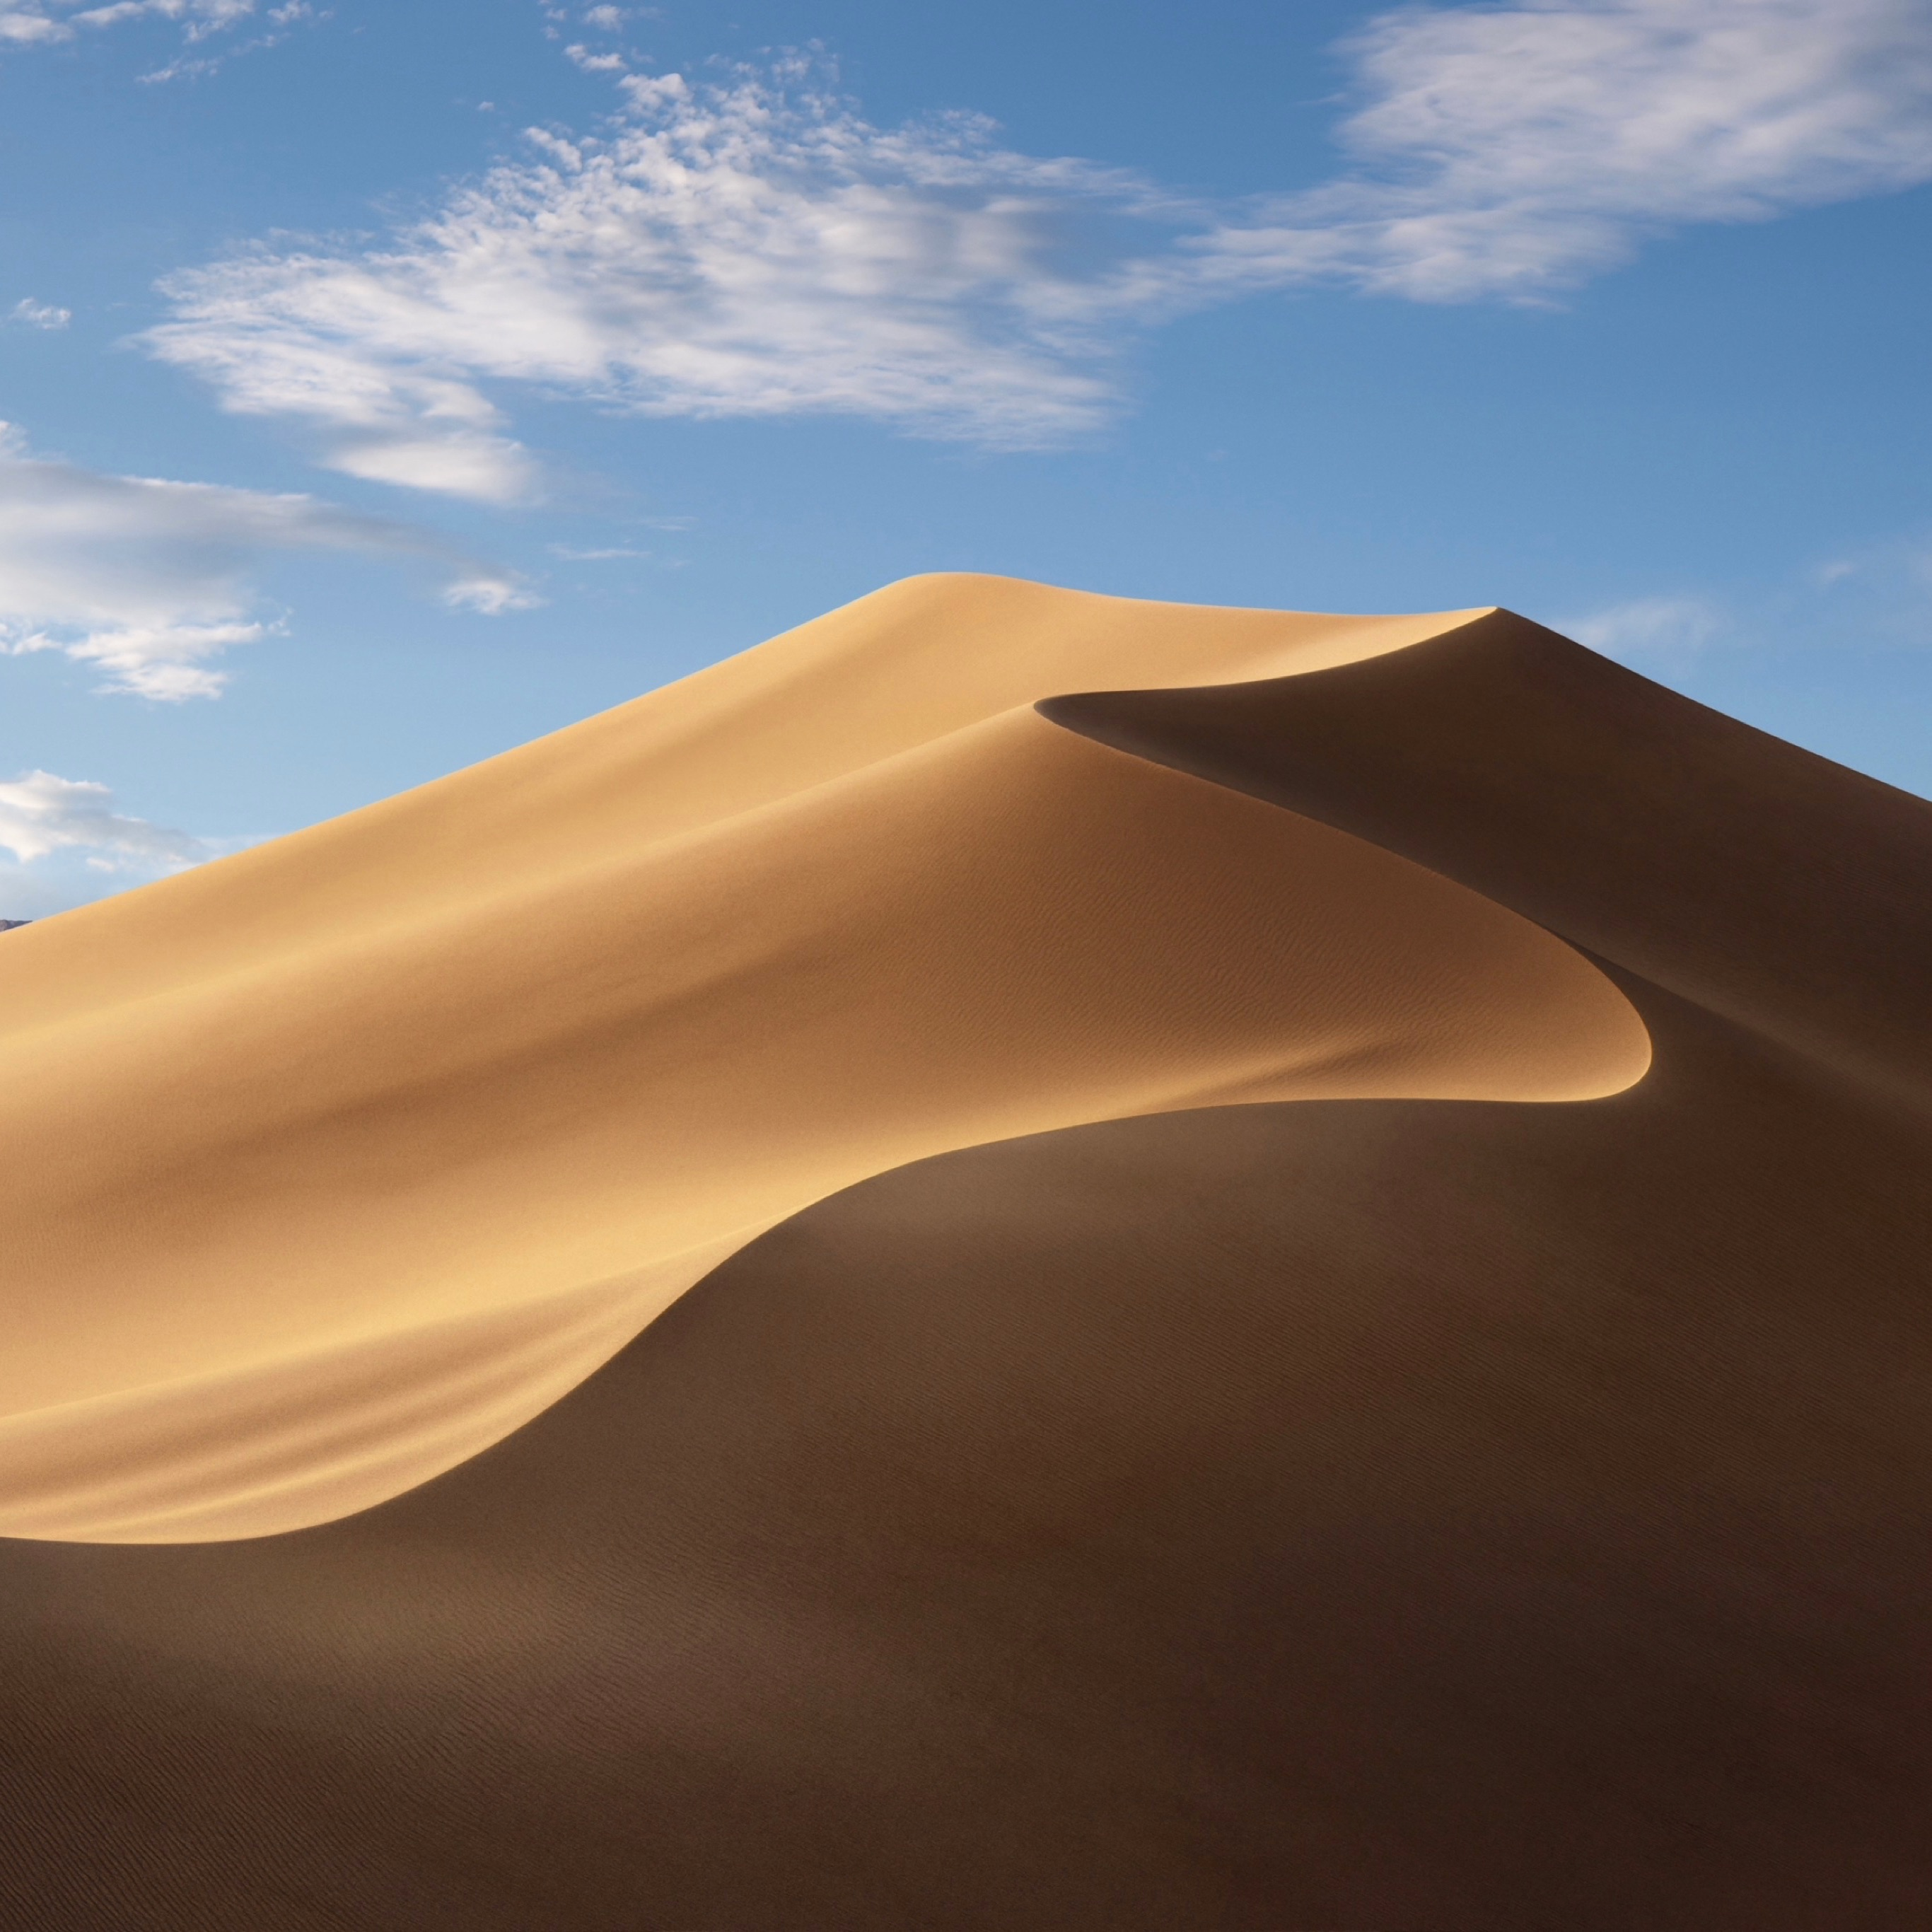 Wallpaper Weekends Macos Mojave Wallpapers For Iphone Ipad